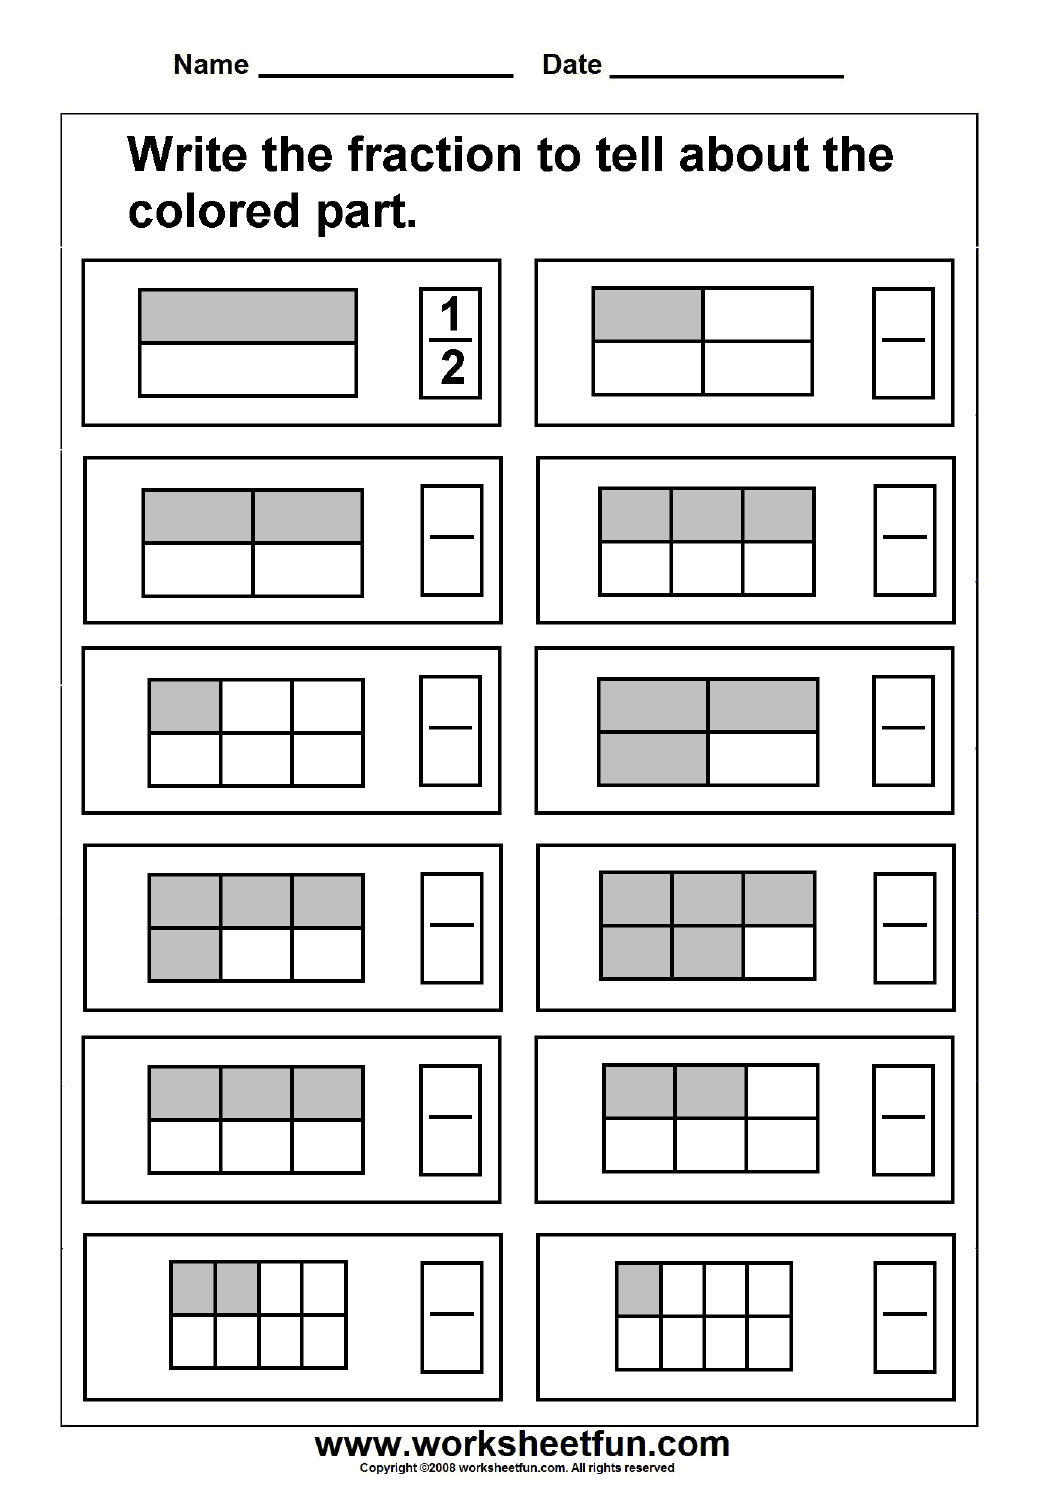 Worksheet Fraction Worksheet fraction free printable worksheets worksheetfun model 3 worksheets